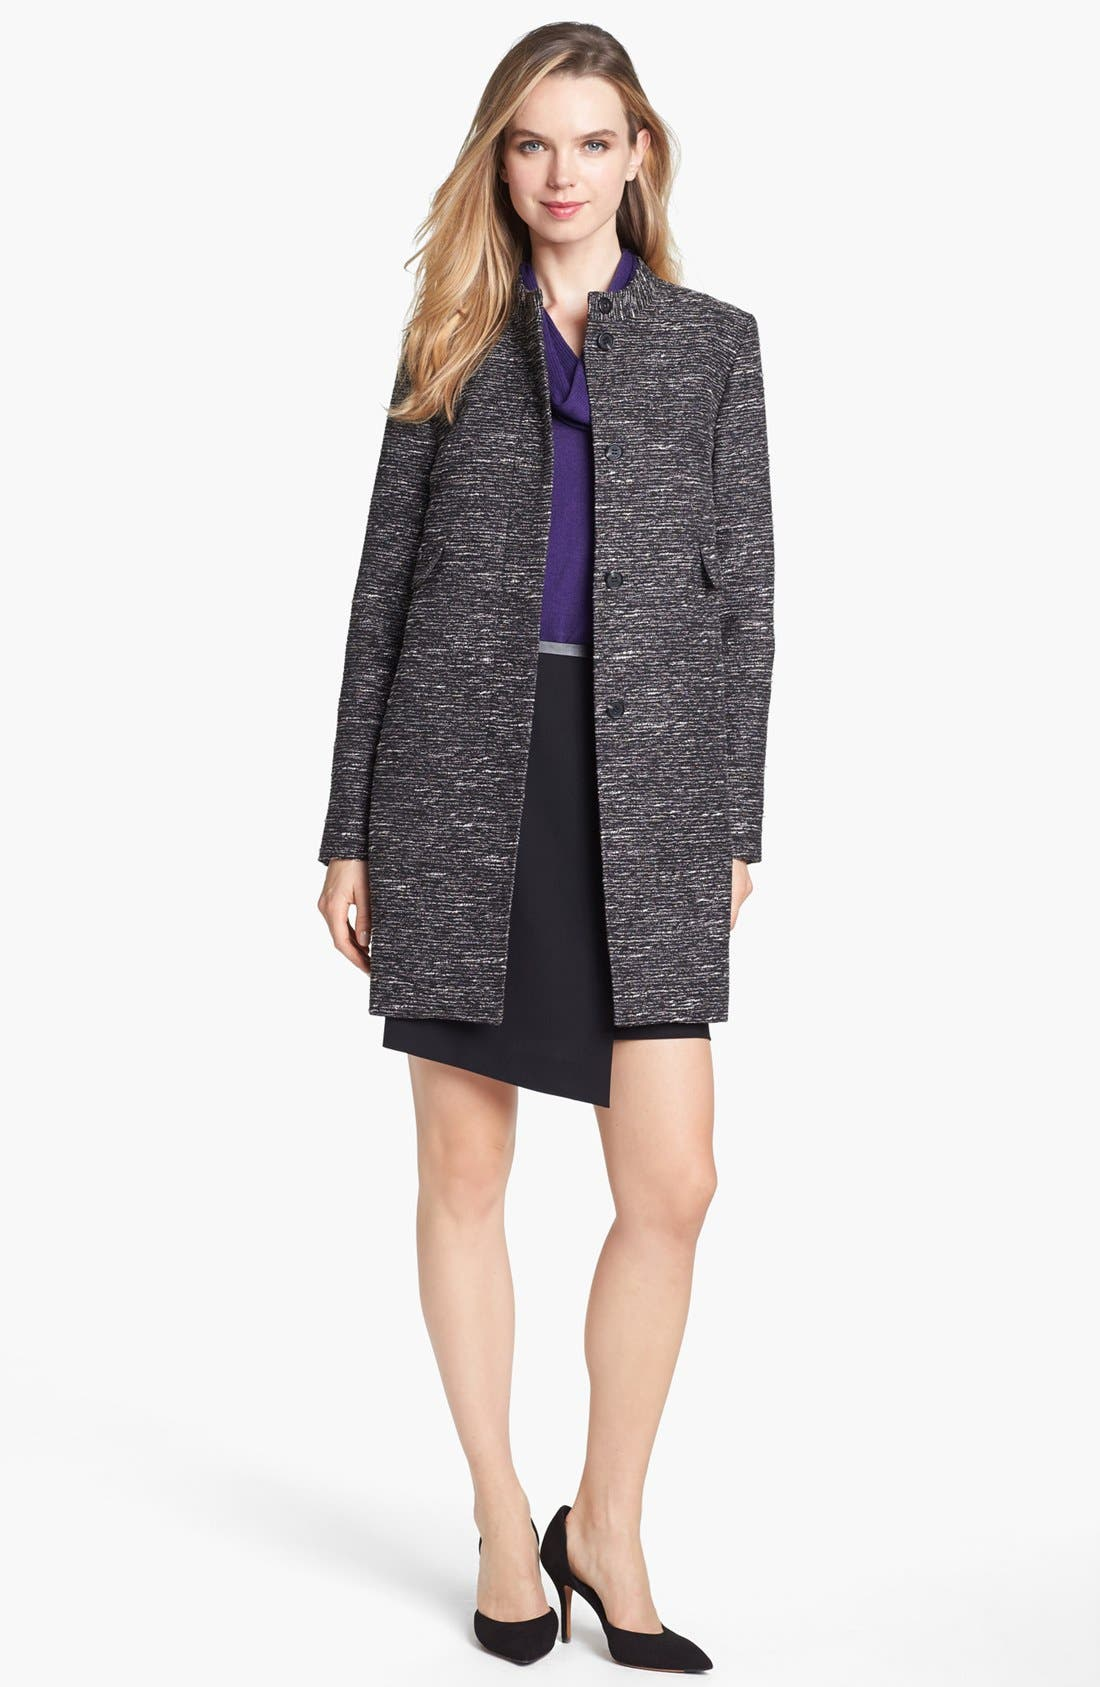 Main Image - Vince Camuto Metallic Tweed Topper